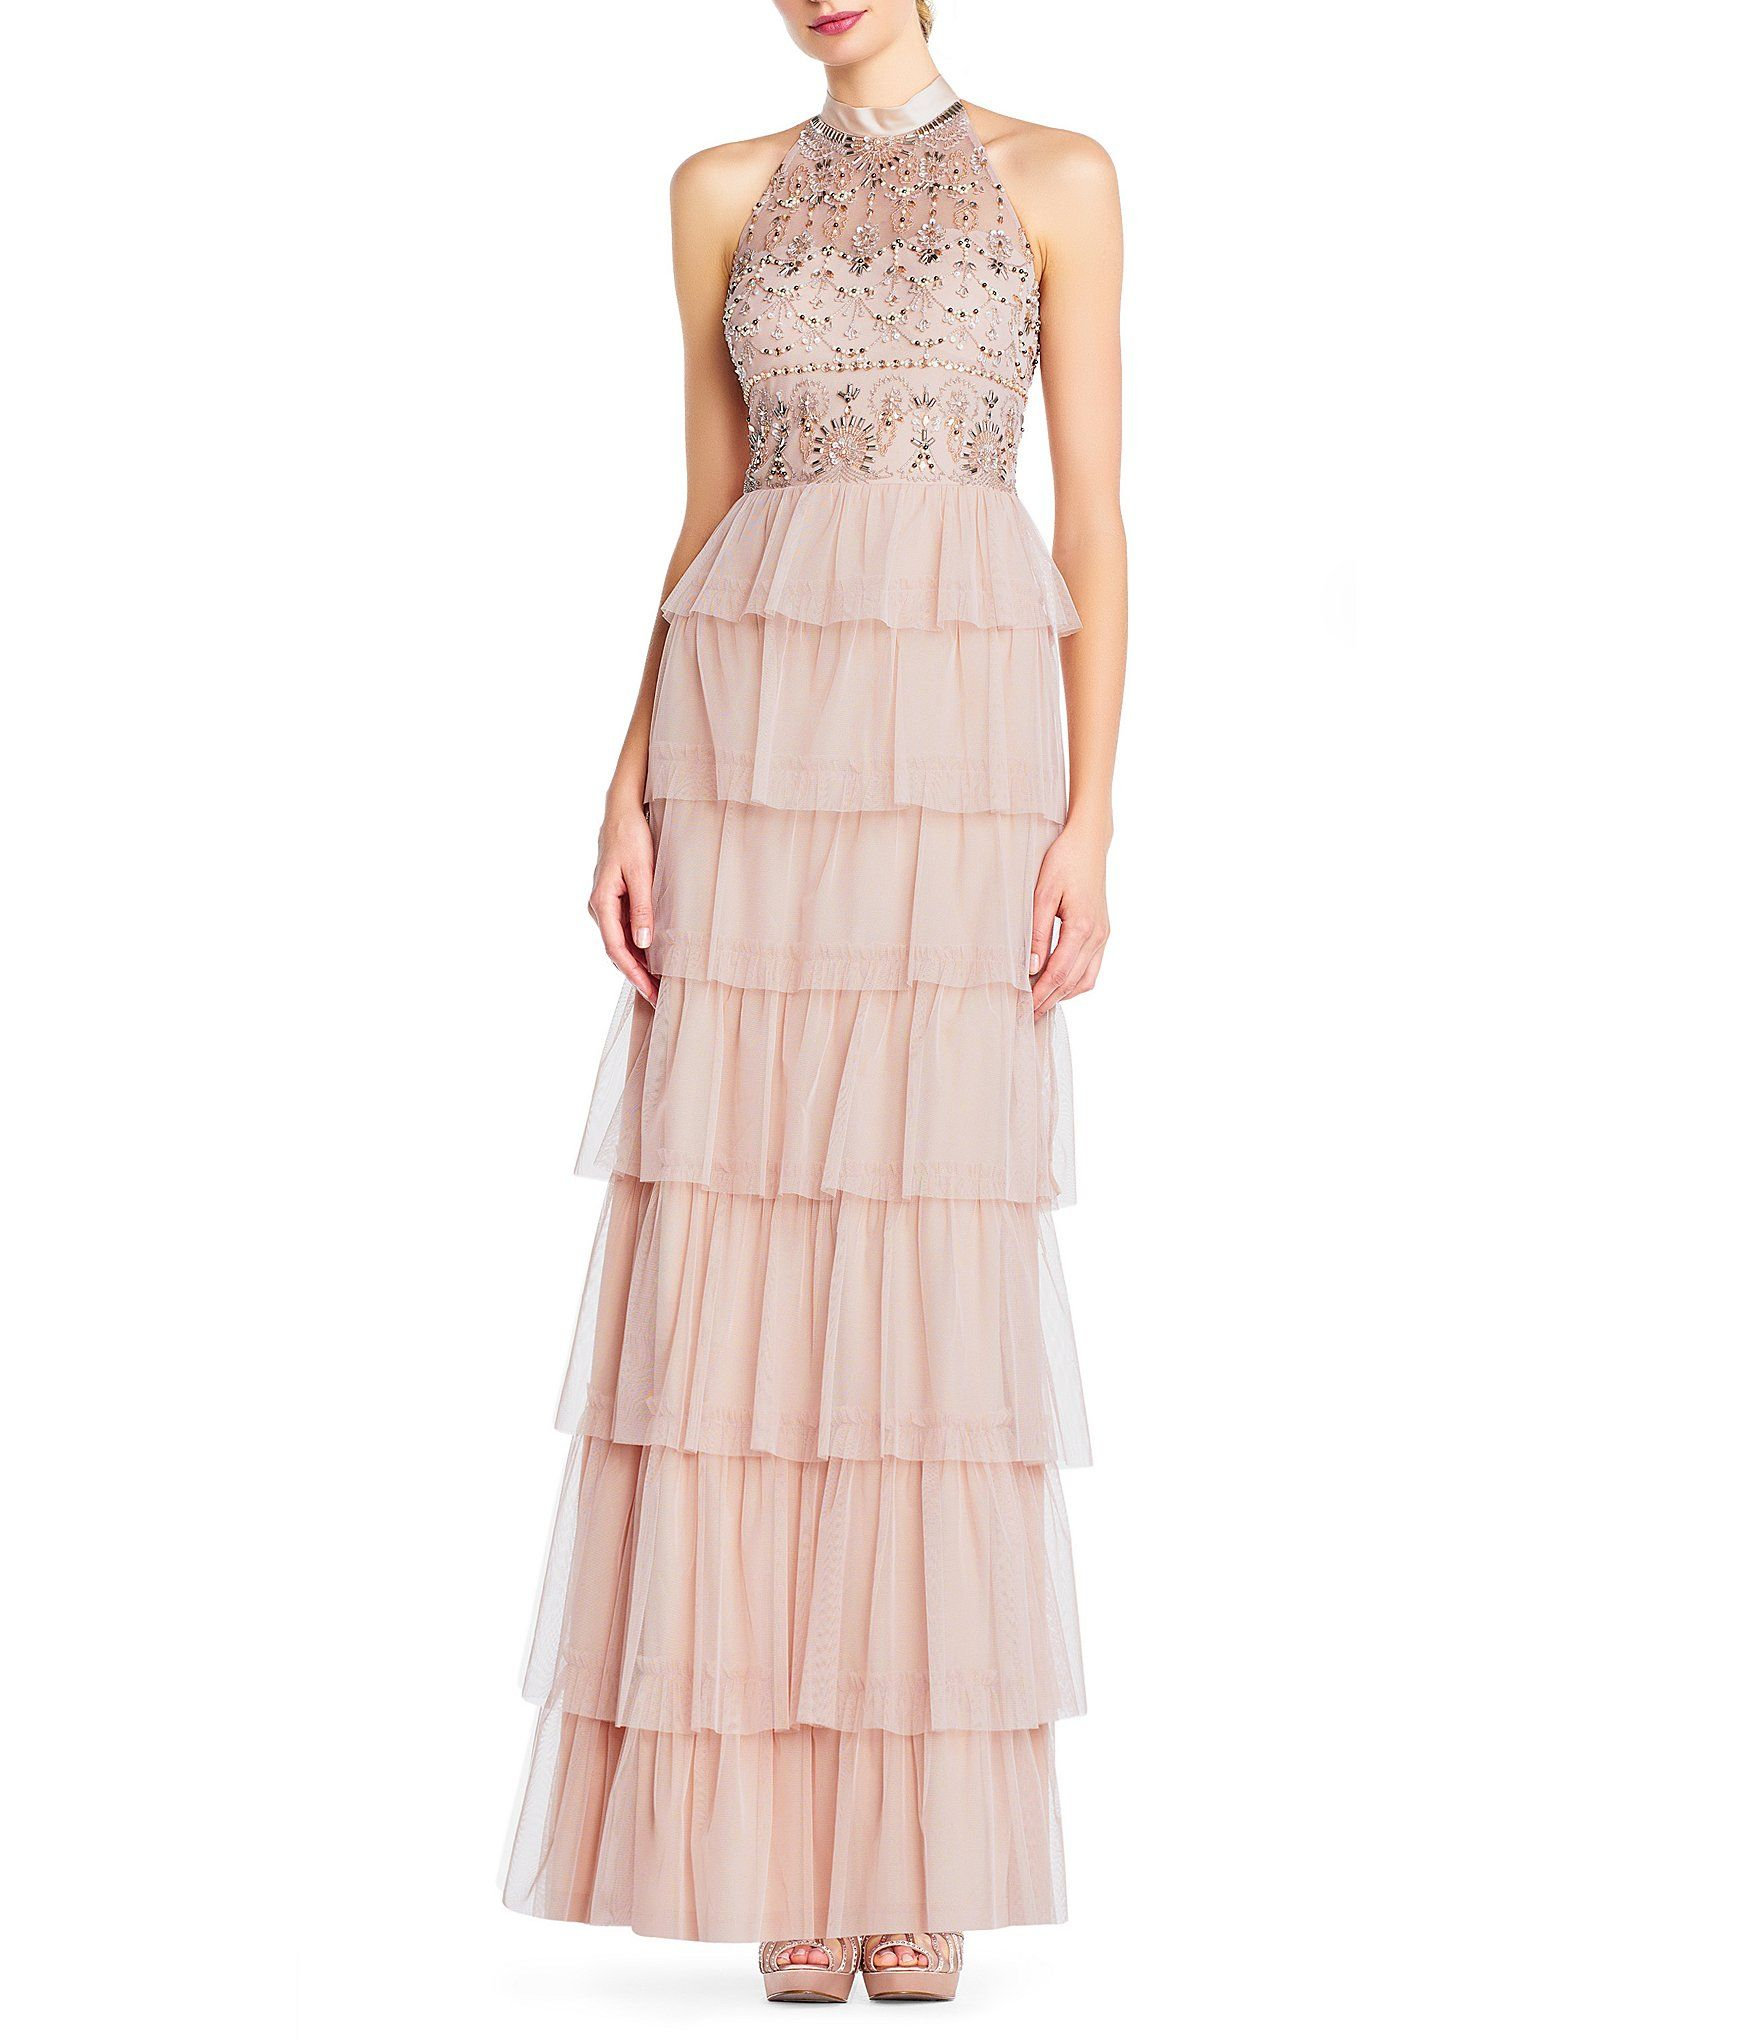 809fcdf2da2 Shop for Adrianna Papell Halter Beaded Tiered Tulle Ruffle Gown at  Dillards.com. Visit Dillards.com to find clothing